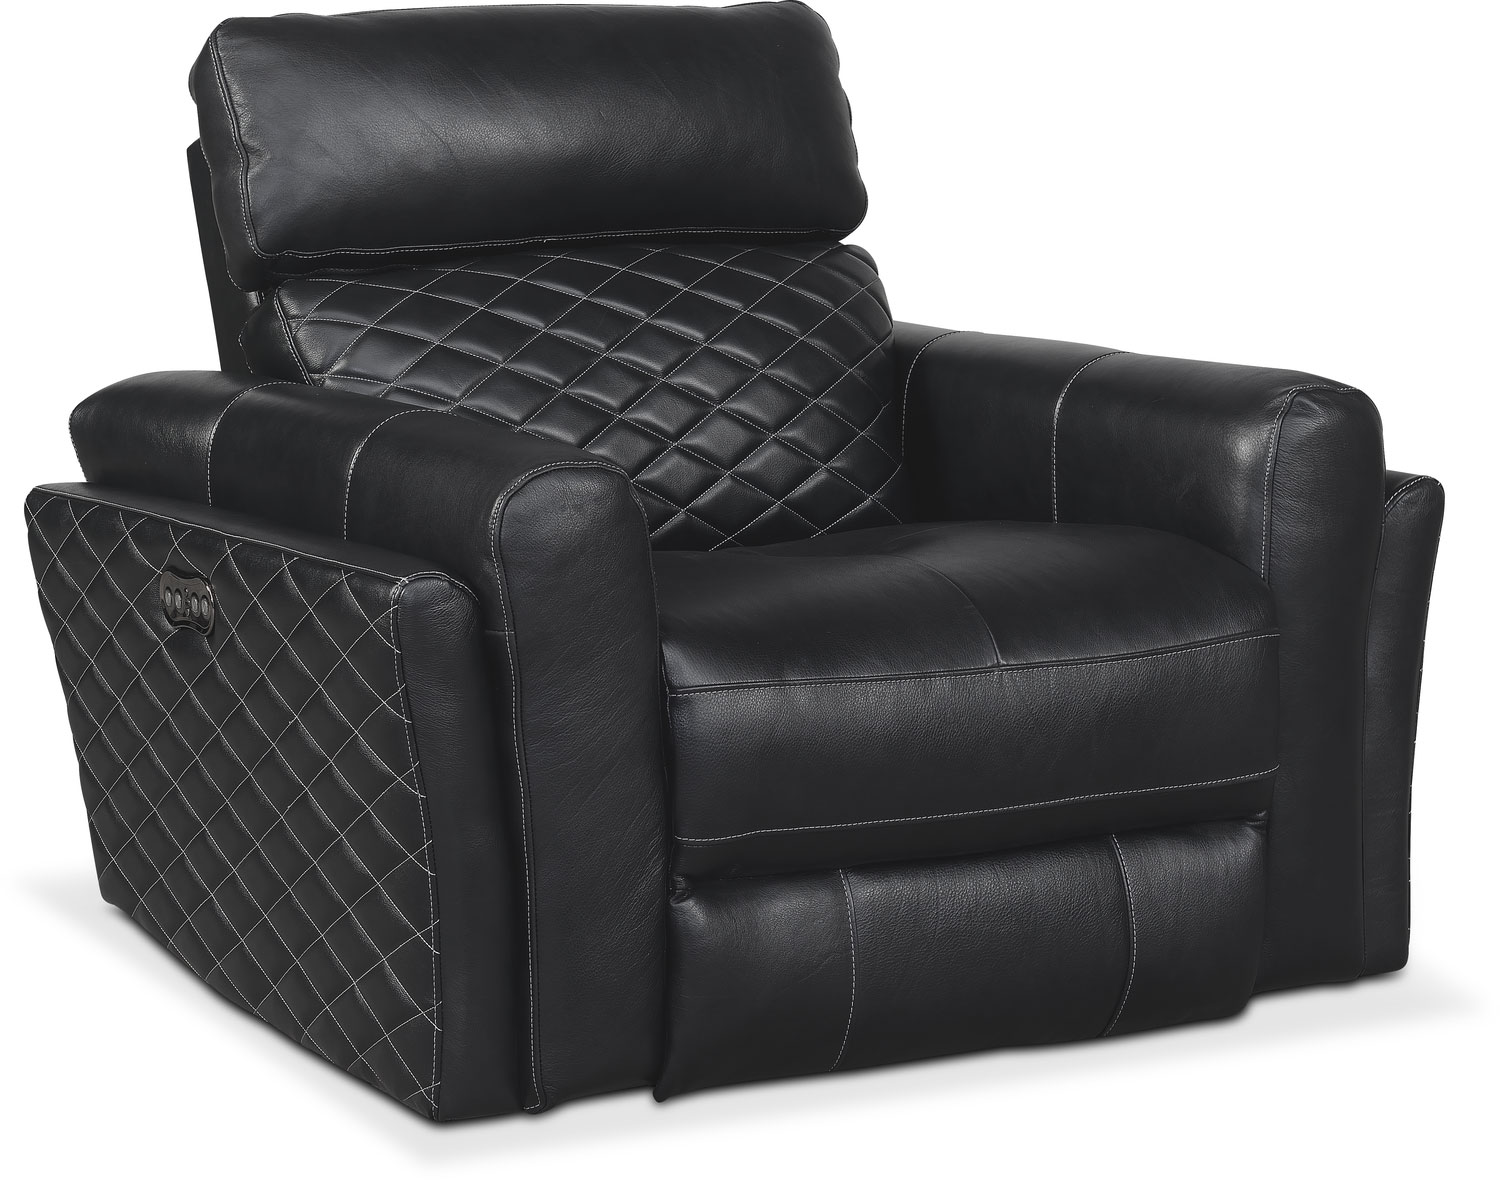 value rocker v camel city room furniture search massage rockers atlantic recliners seating living recliner